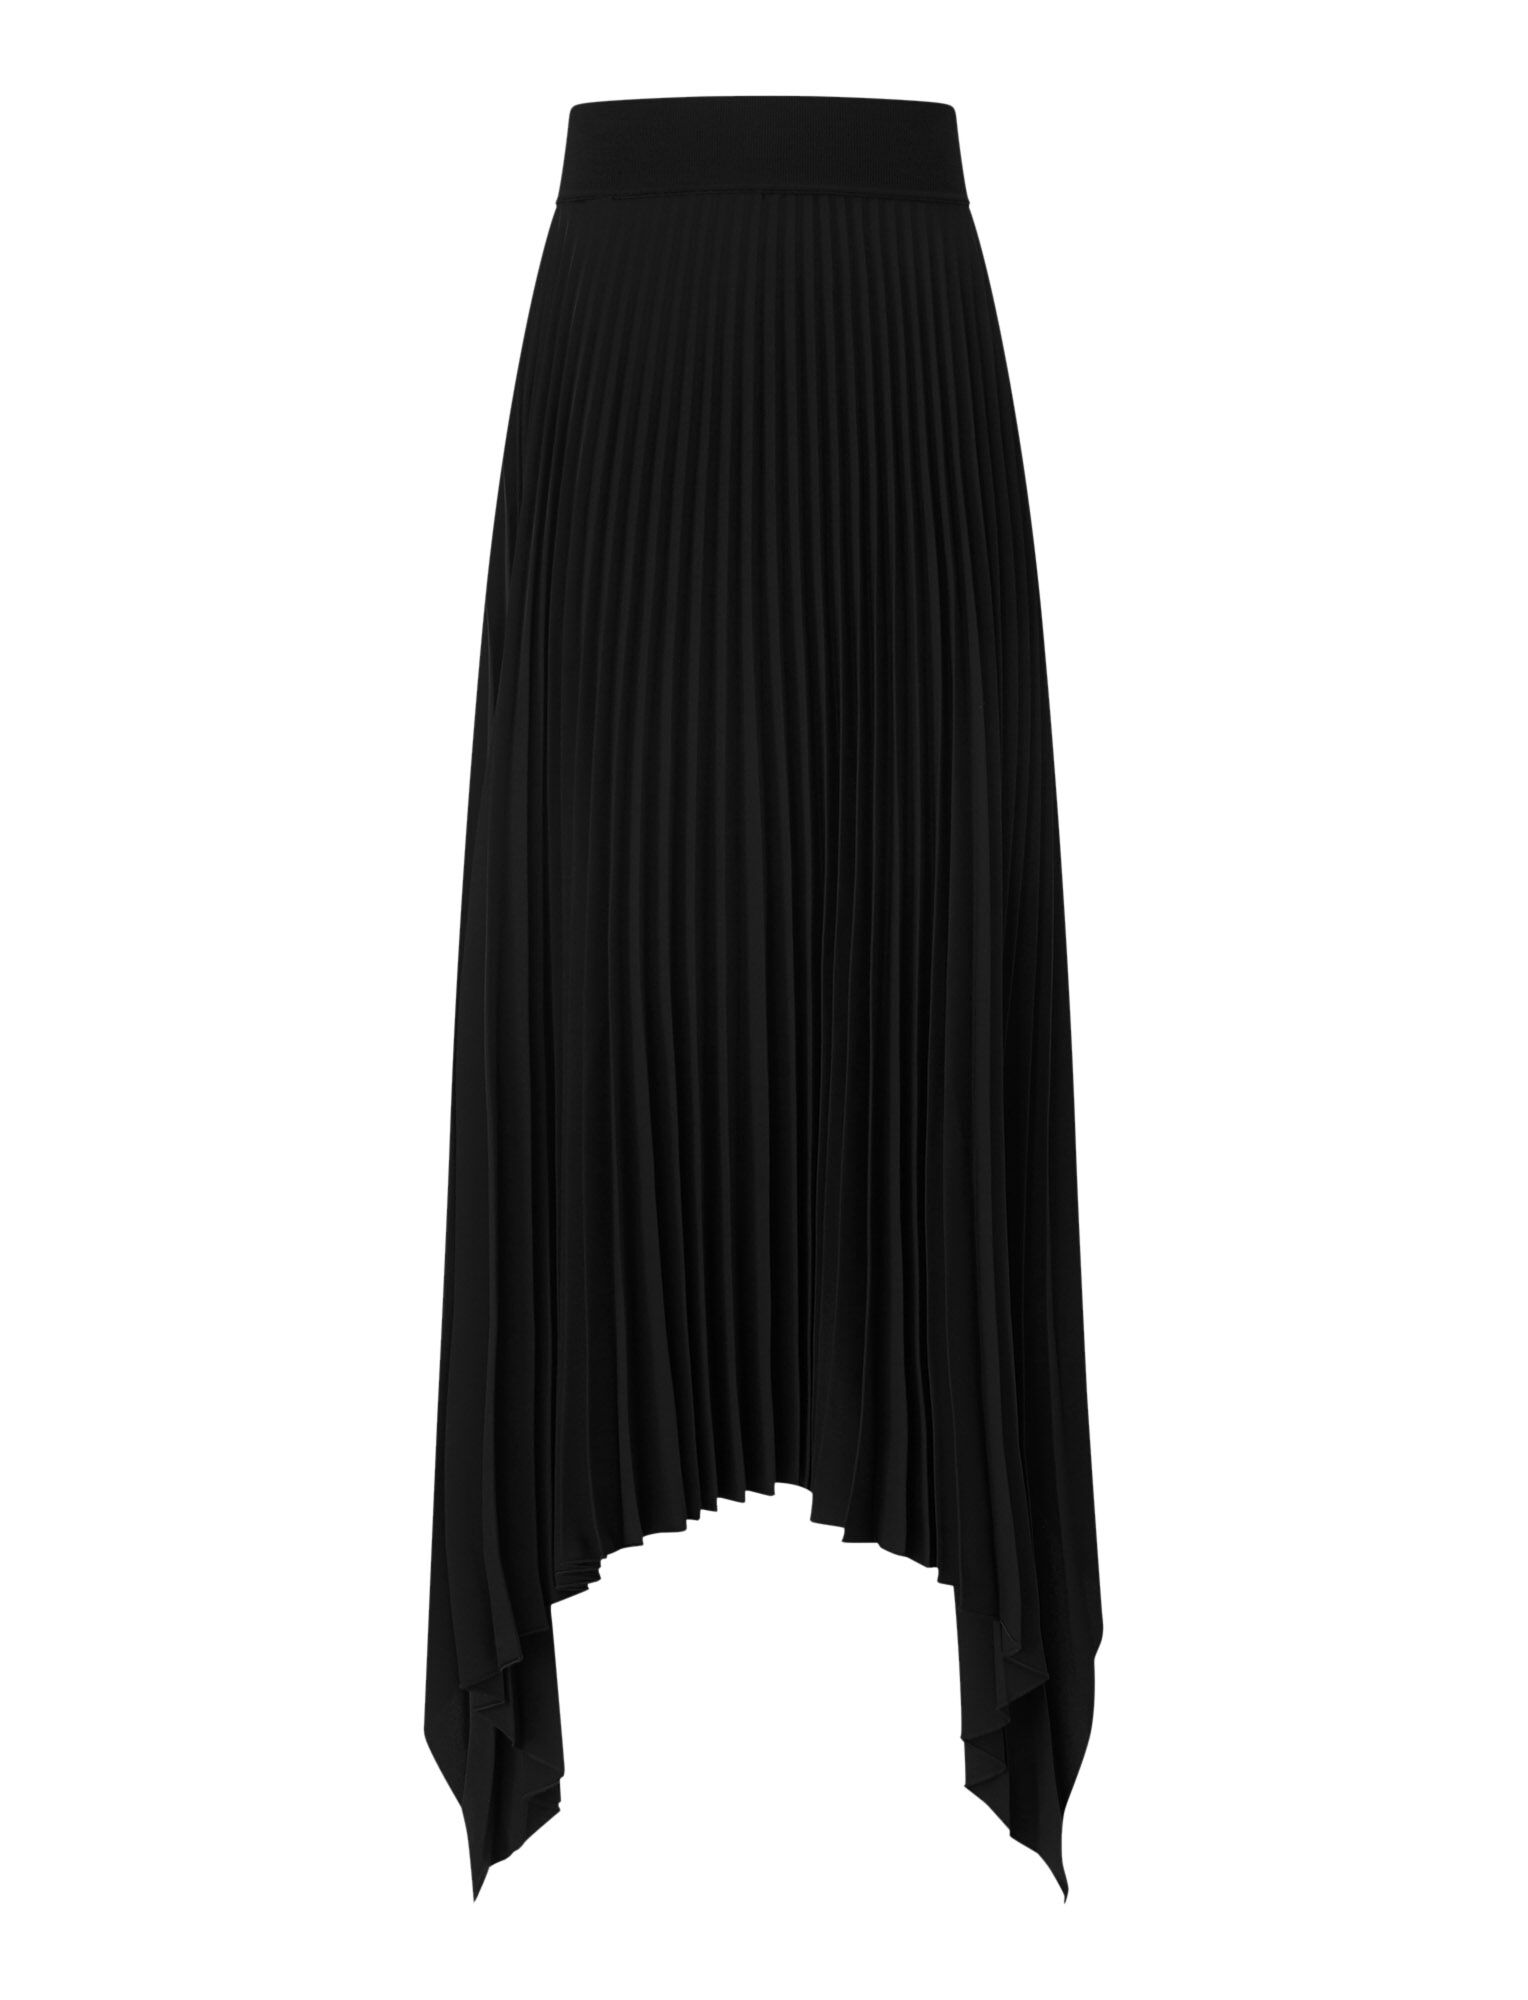 Joseph, Ade Rib Plisse Skirt, in BLACK